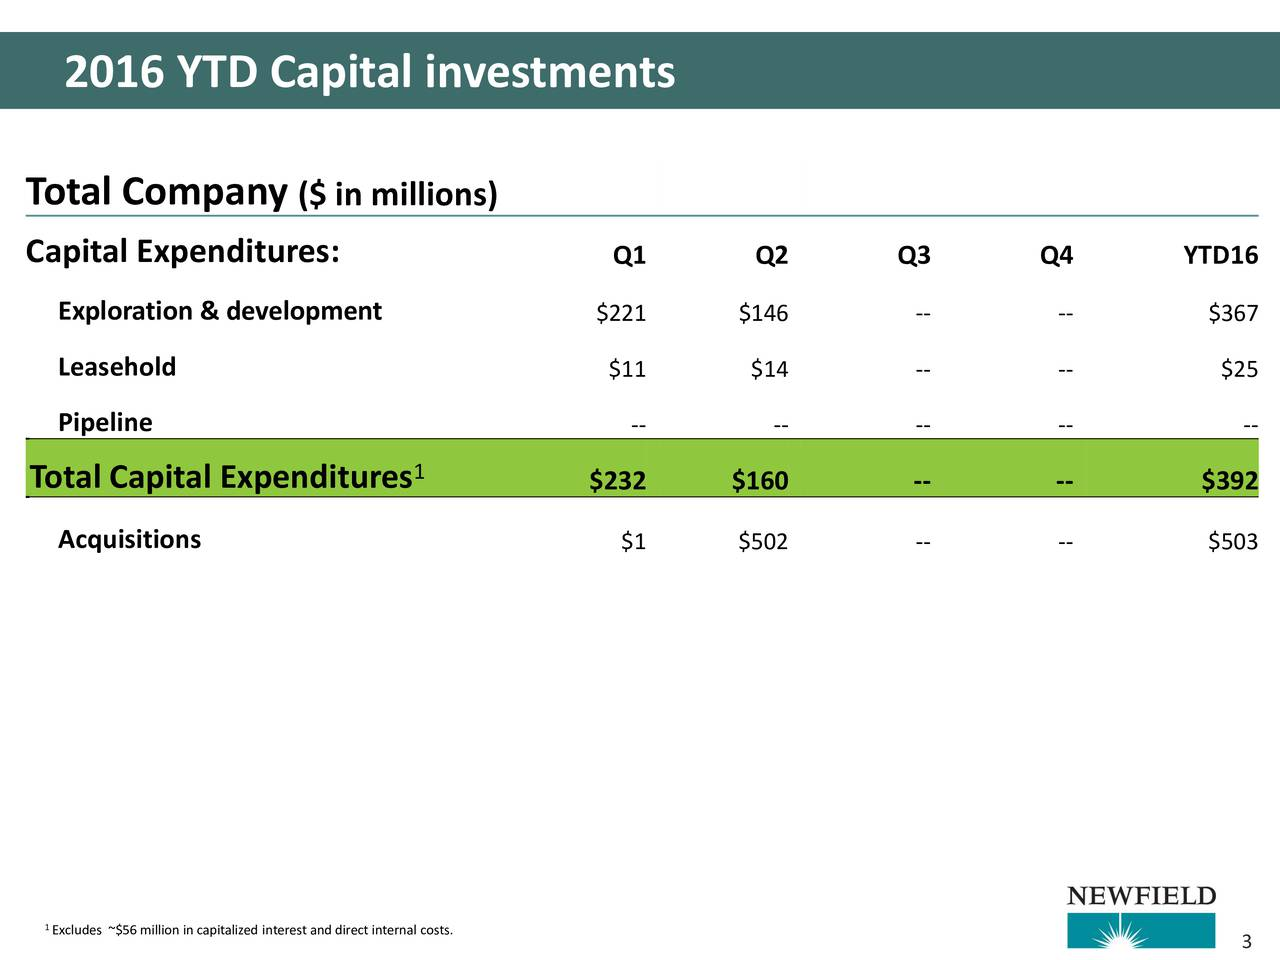 Total Company ($ in millions) Capital Expenditures: Q1 Q2 Q3 Q4 YTD16 Exploration & development $221 $146 -- -- $367 Leasehold $11 $14 -- -- $25 Pipeline -- -- -- -- -- Total Capital Expenditures 1 $232 $160 -- -- $392 Acquisitions $1 $502 -- -- $503 Excludes ~$56million in capitalized interest and direct internal costs.